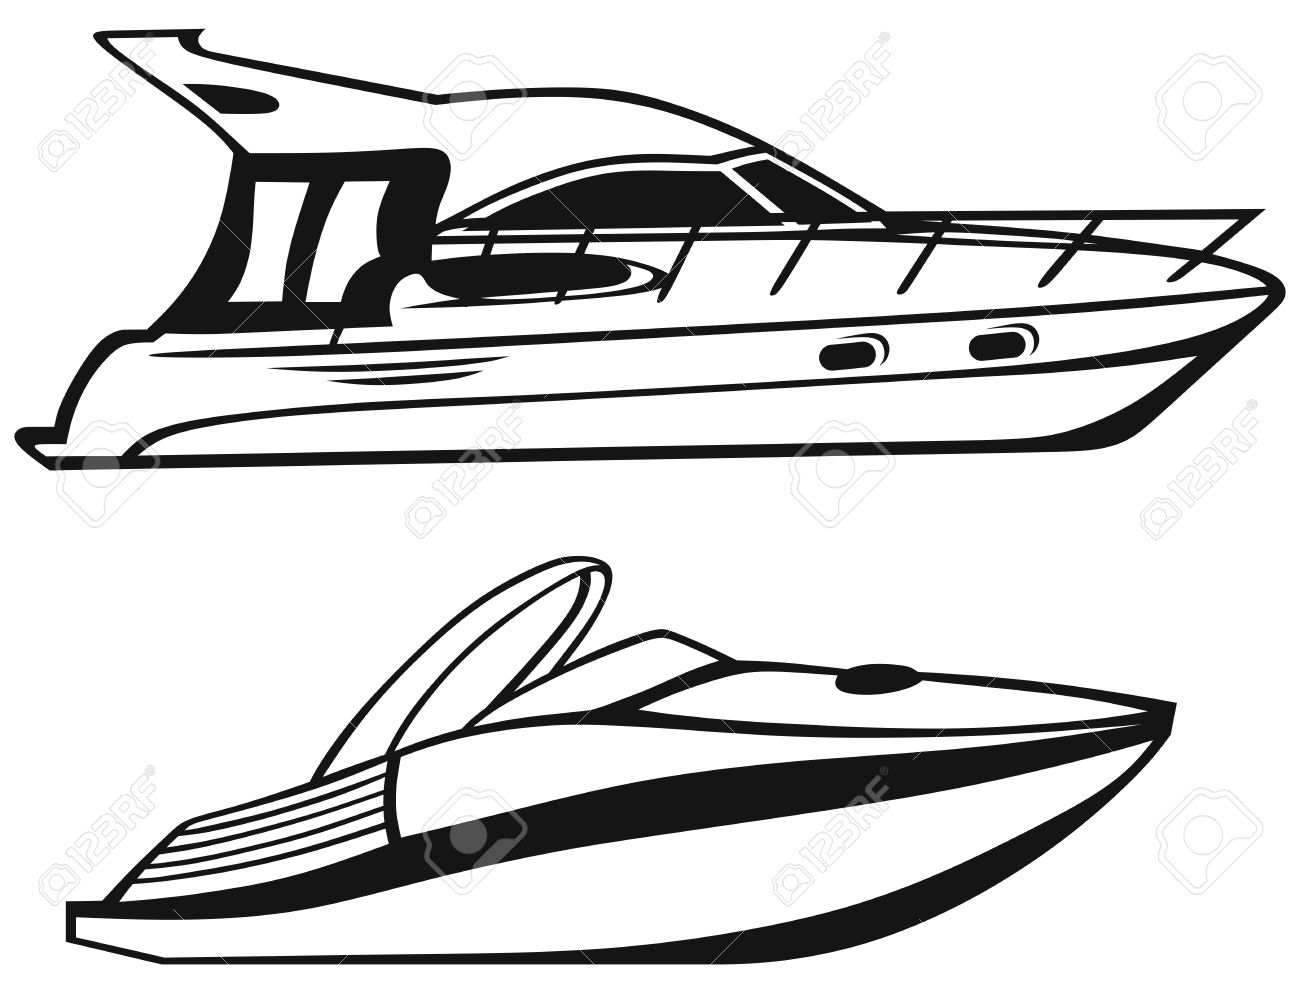 1300x993 Clipart Boat Clipartfest Boat Clipart Speed Boat